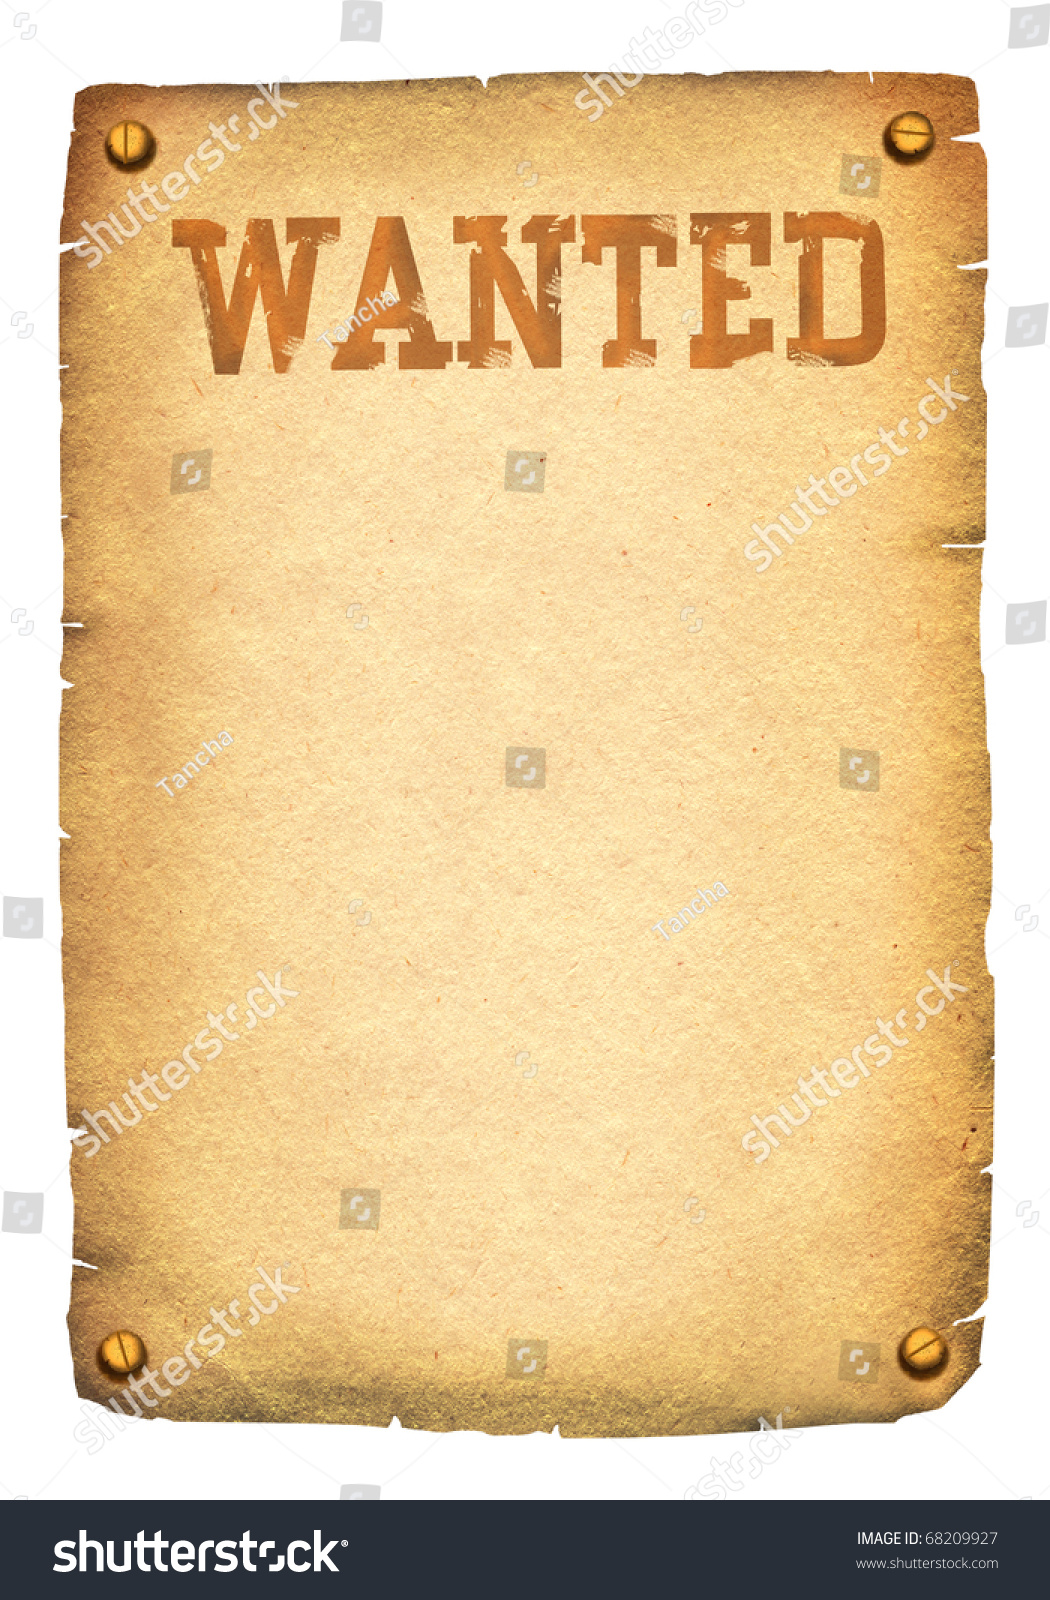 Wanted Posterbackground Stock Illustration 68209927 - Shutterstock